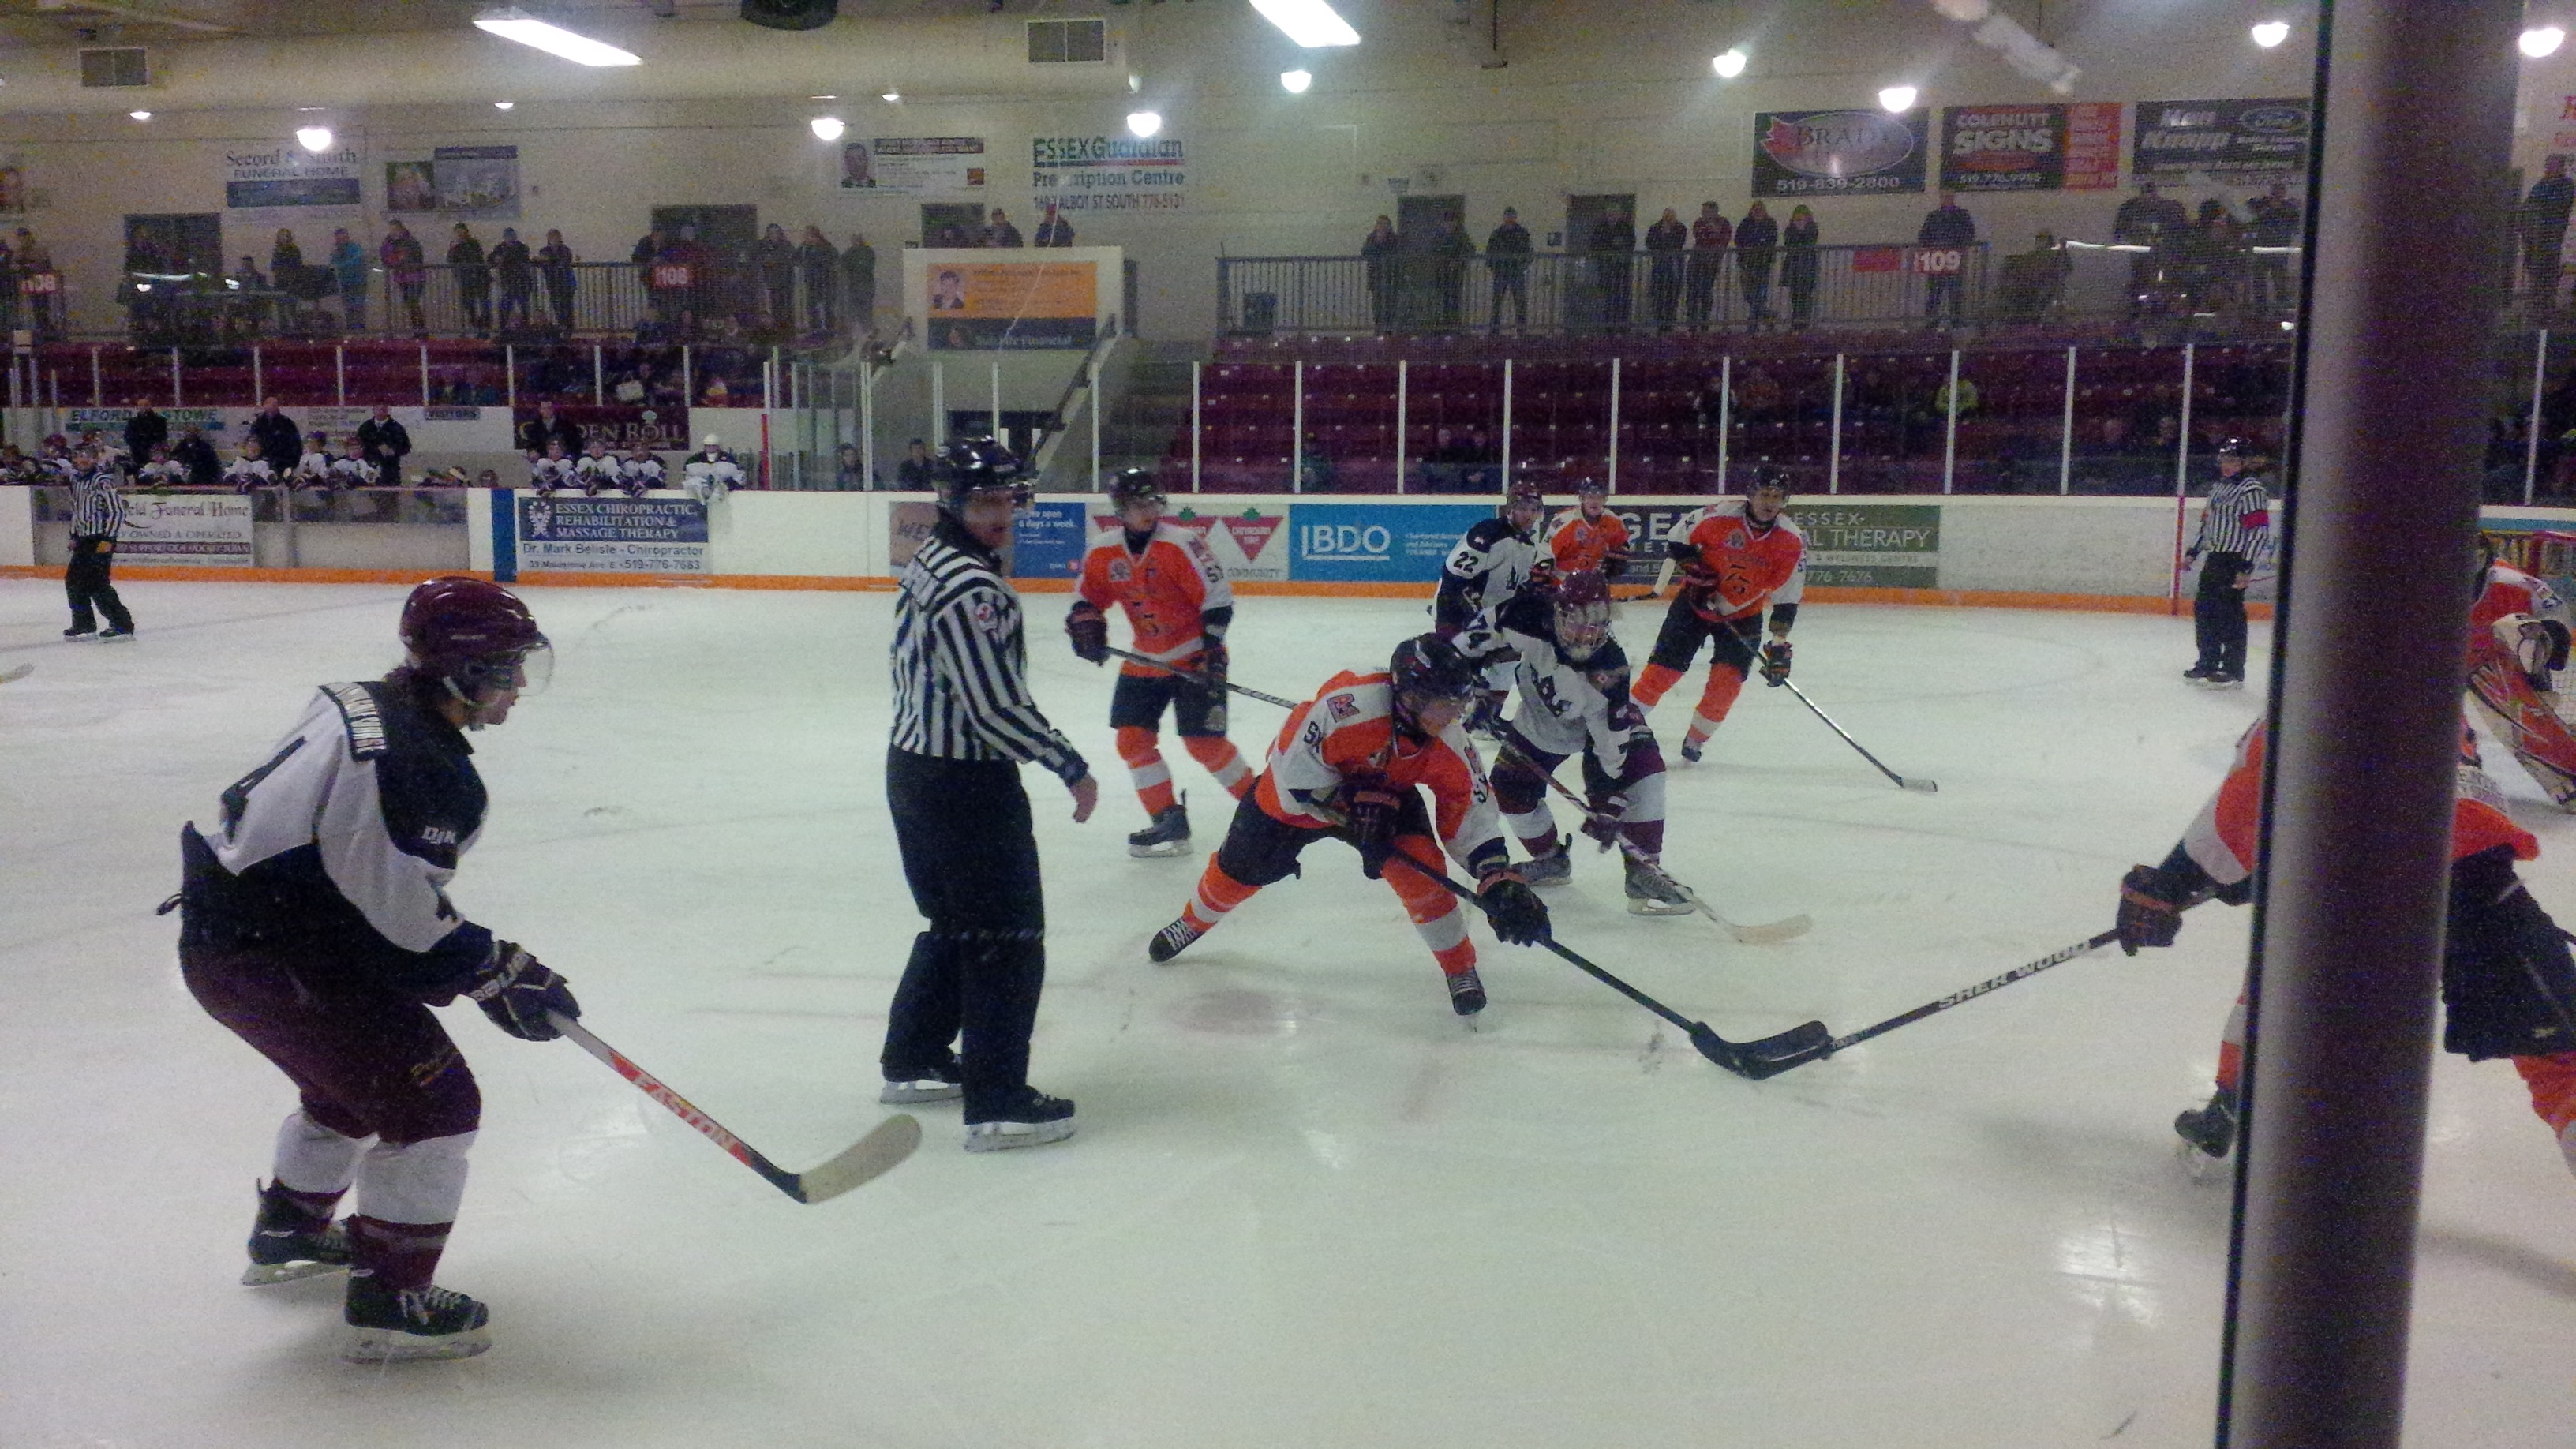 The Dresden Junior Kings and Essex 73's face off at Essex Memorial Arena. Photo taken February 4, 2014. (Ricardo Veneza)